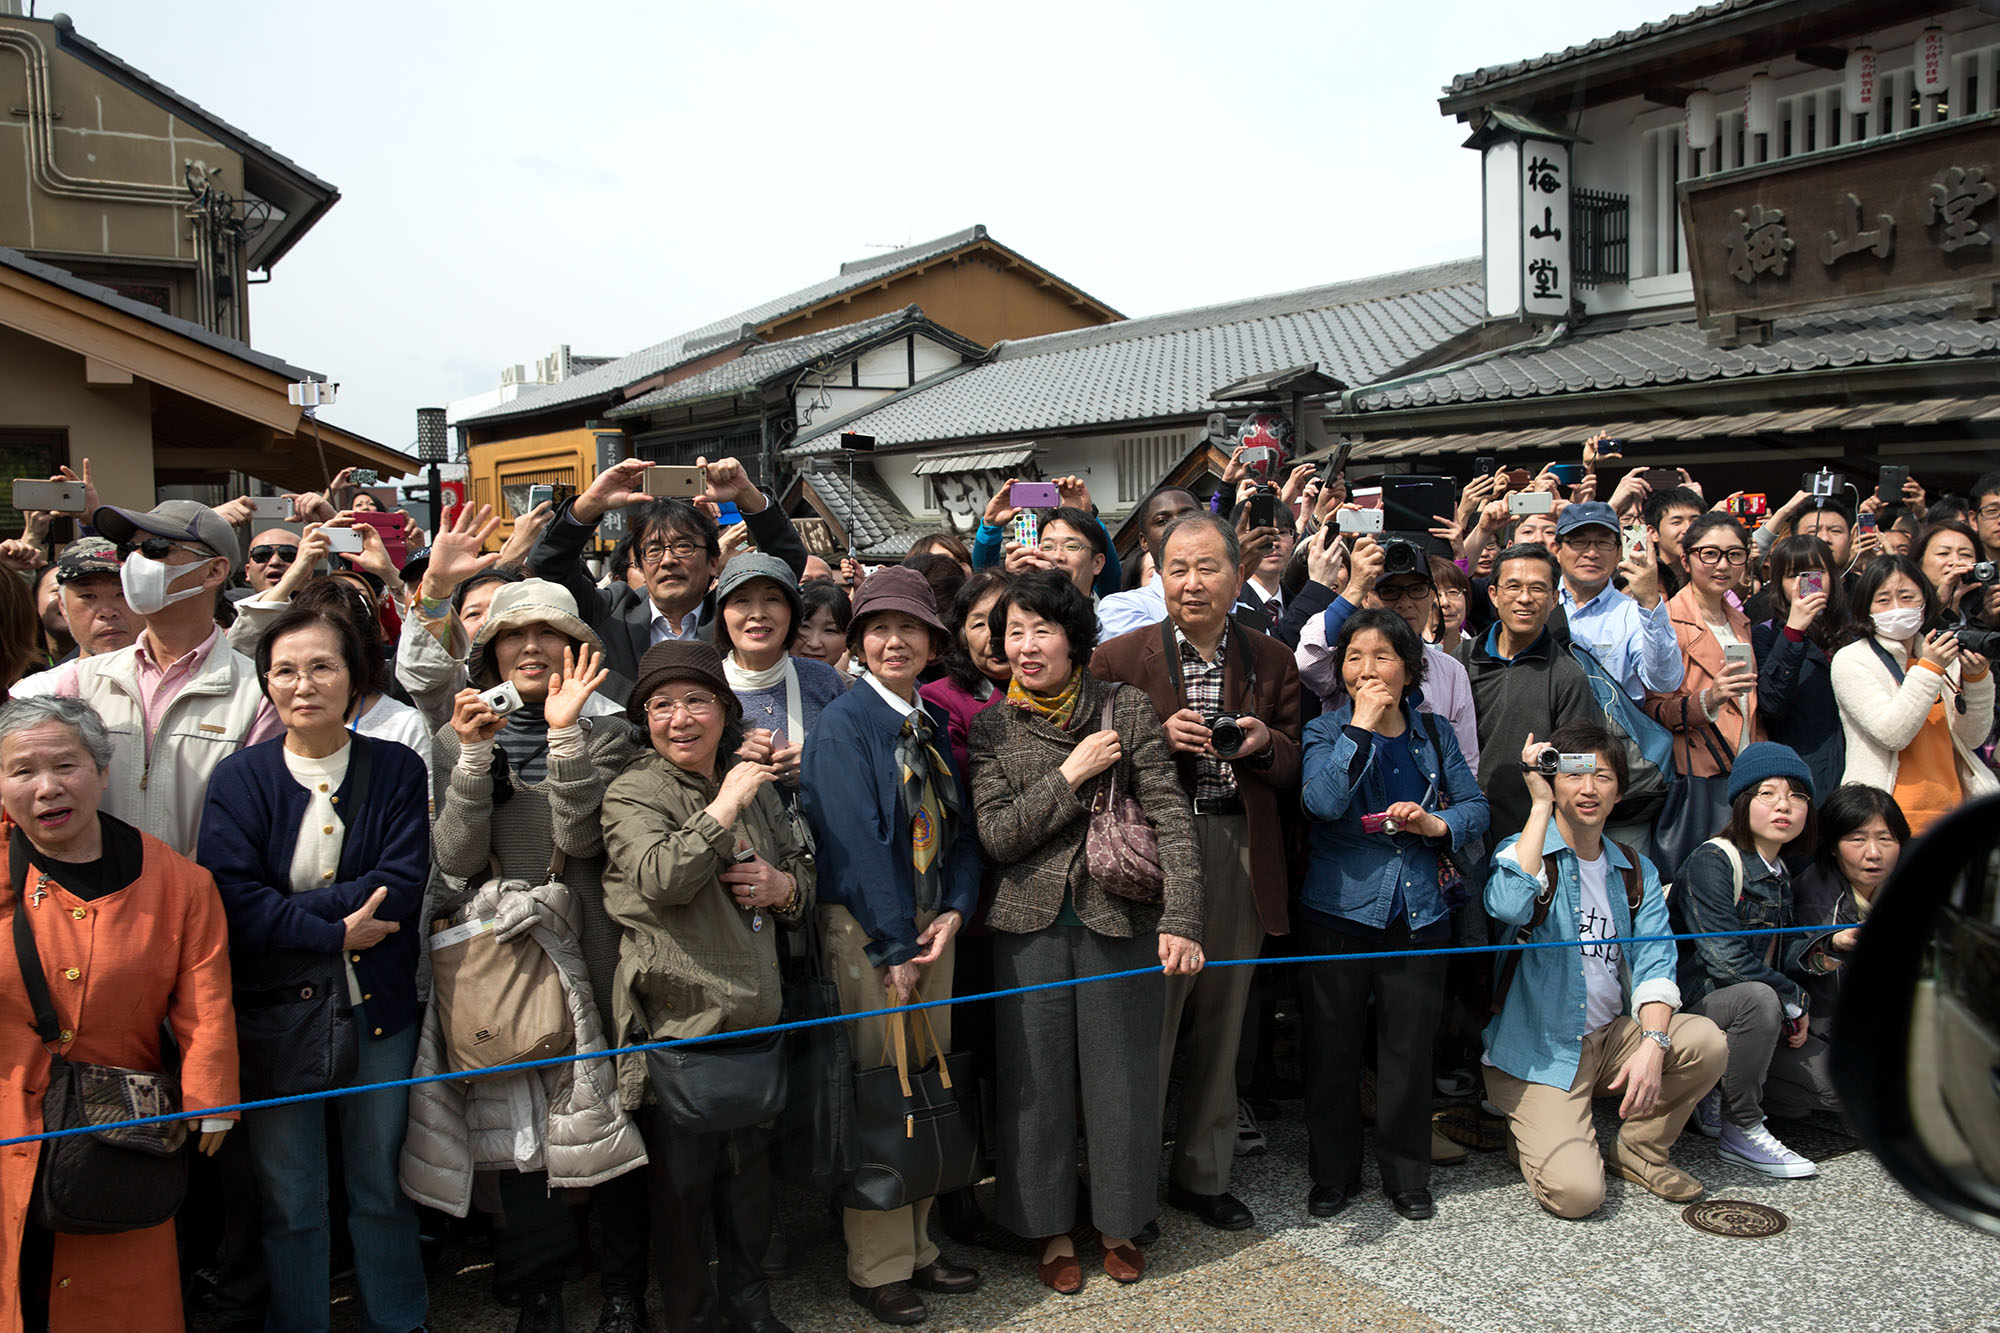 Bystanders watch the First Lady's motorcade in Kyoto. (Official White House Photo by Amanda Lucidon)